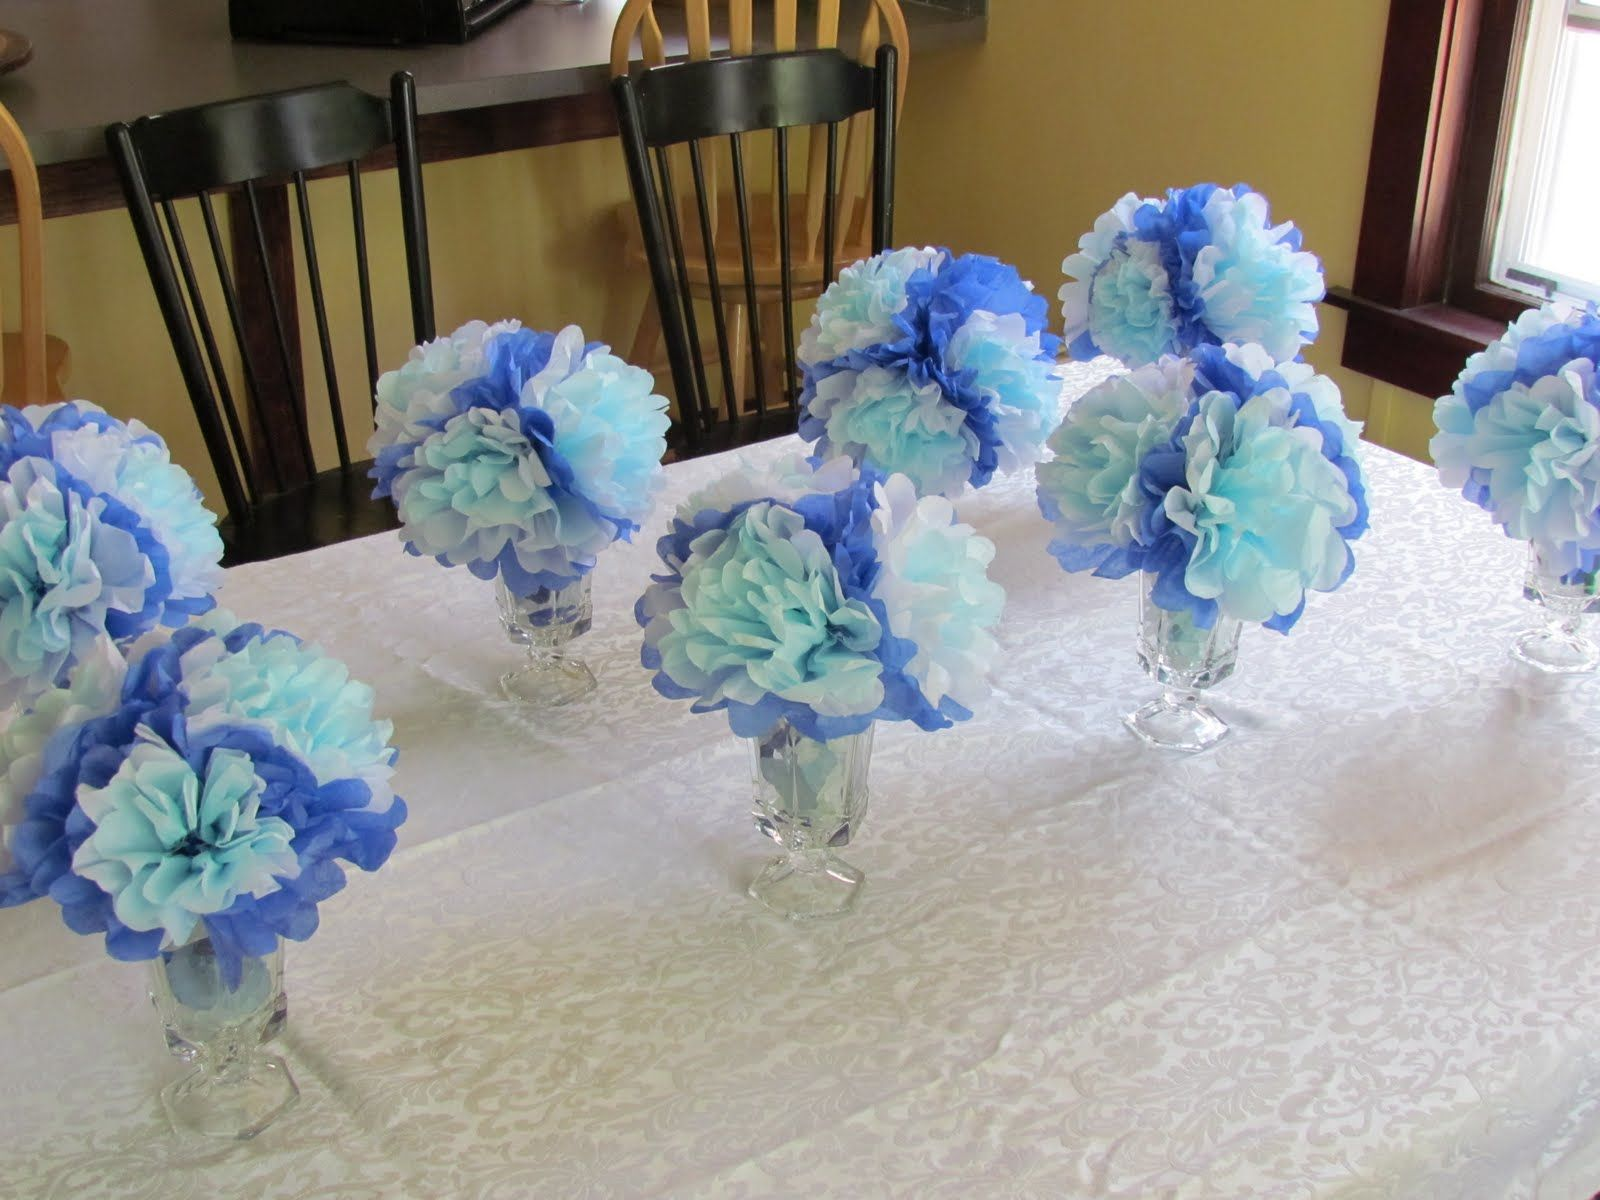 Ryan S Art Blog Some Serious Nesting Boy Baby Shower Centerpieces Simple Baby Shower Centerpieces Diy Baby Shower Centerpieces